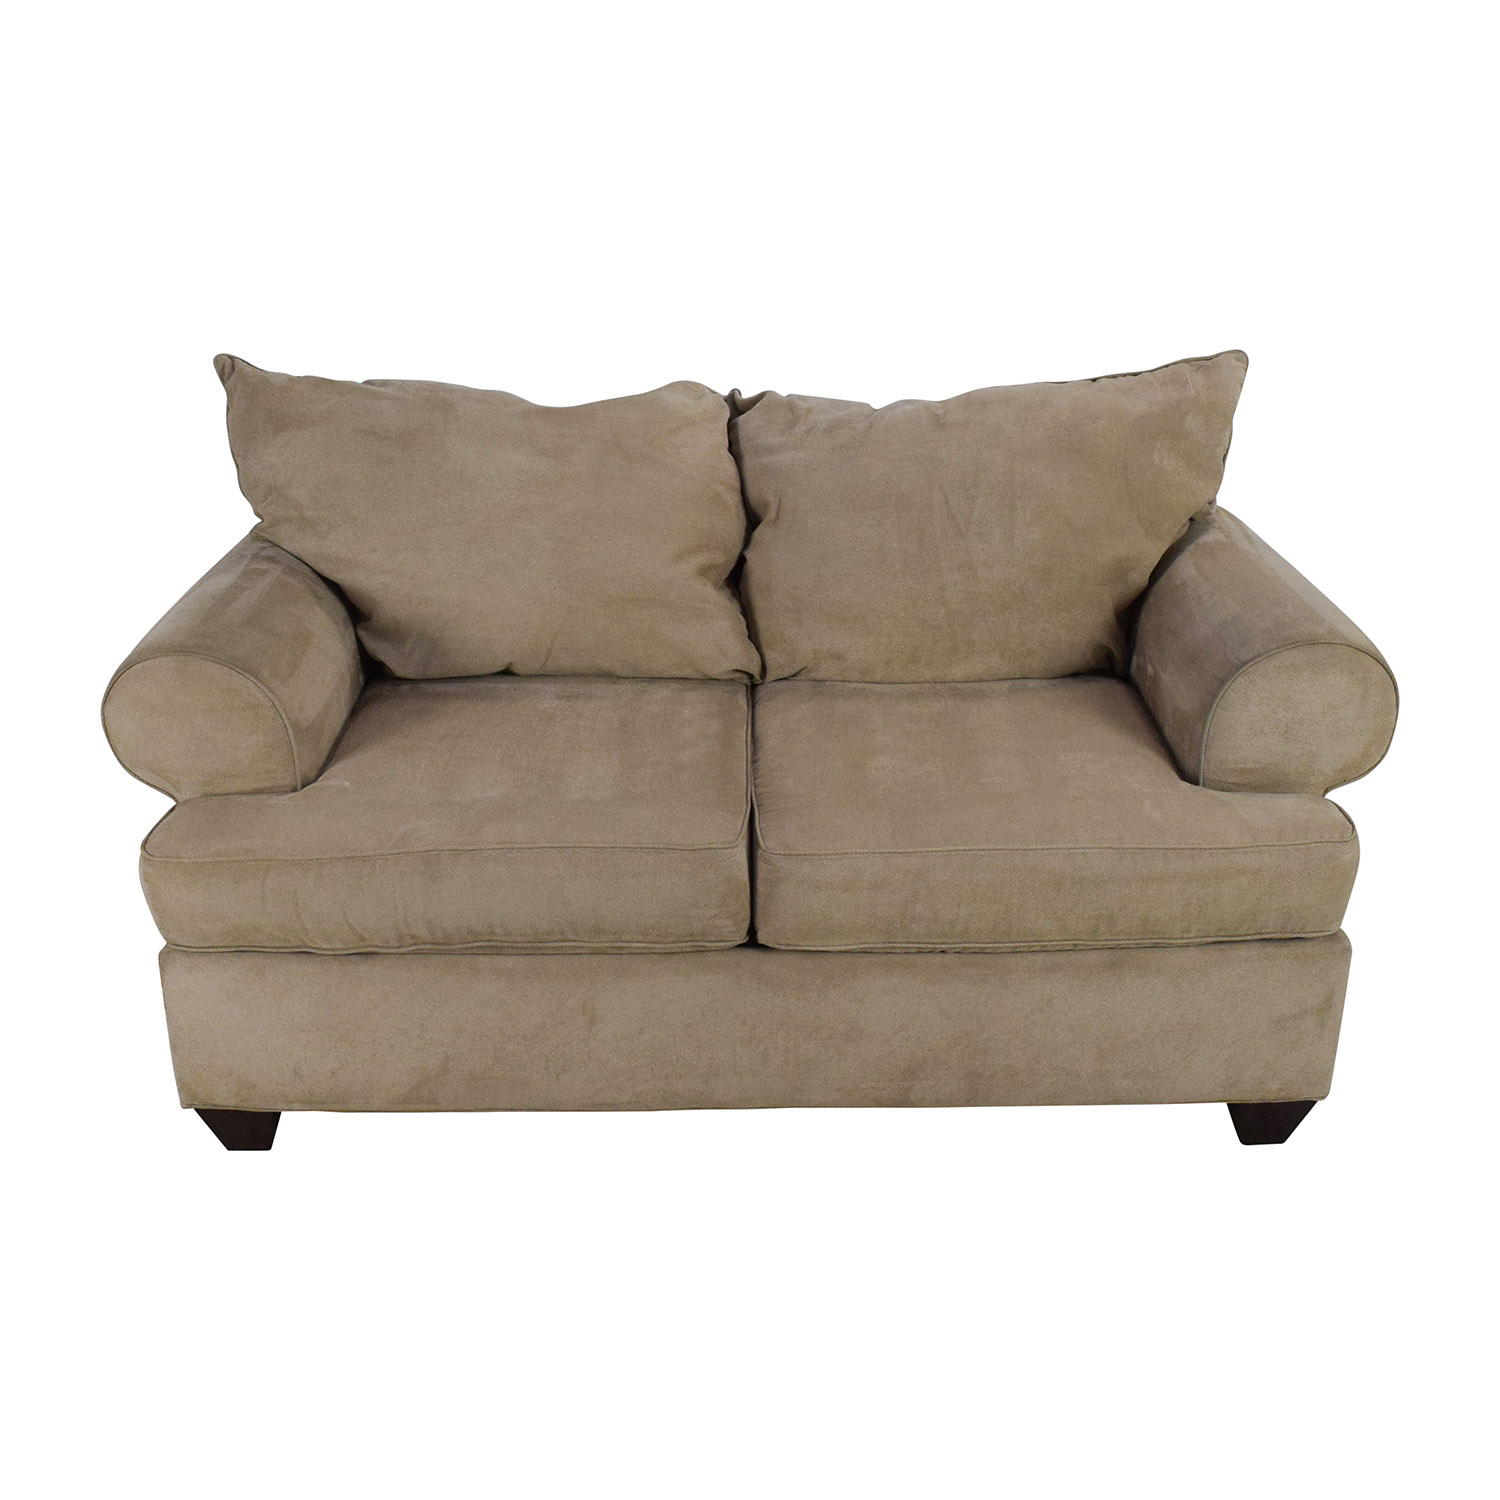 Used Sofas Online Sears Sectional Sofa And Loveseat Set With Diy Plus Sofas Under Thesofa